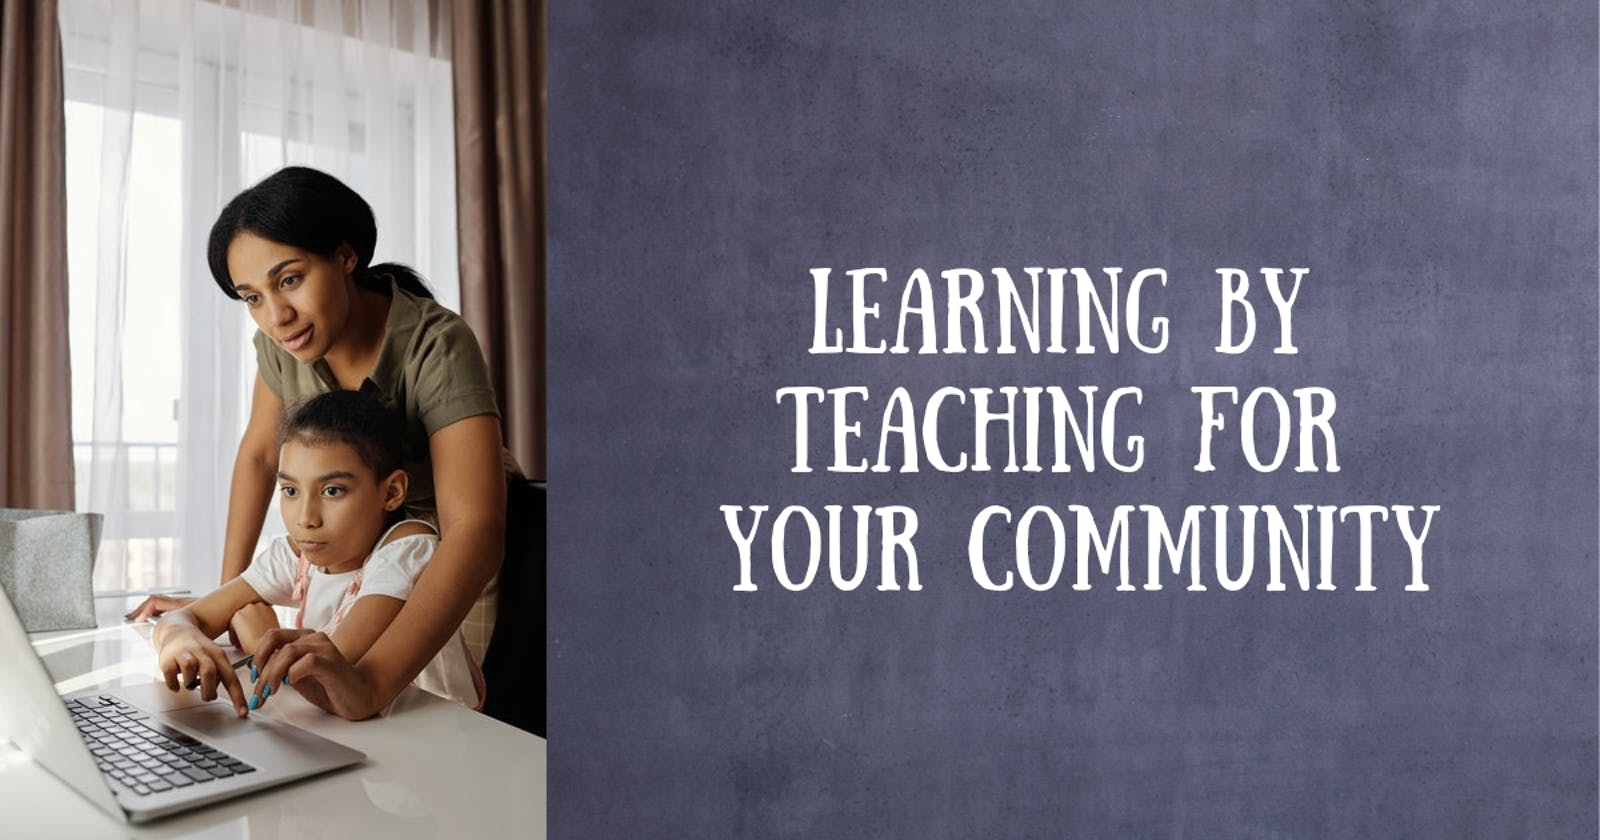 Learning by Teaching for your Community